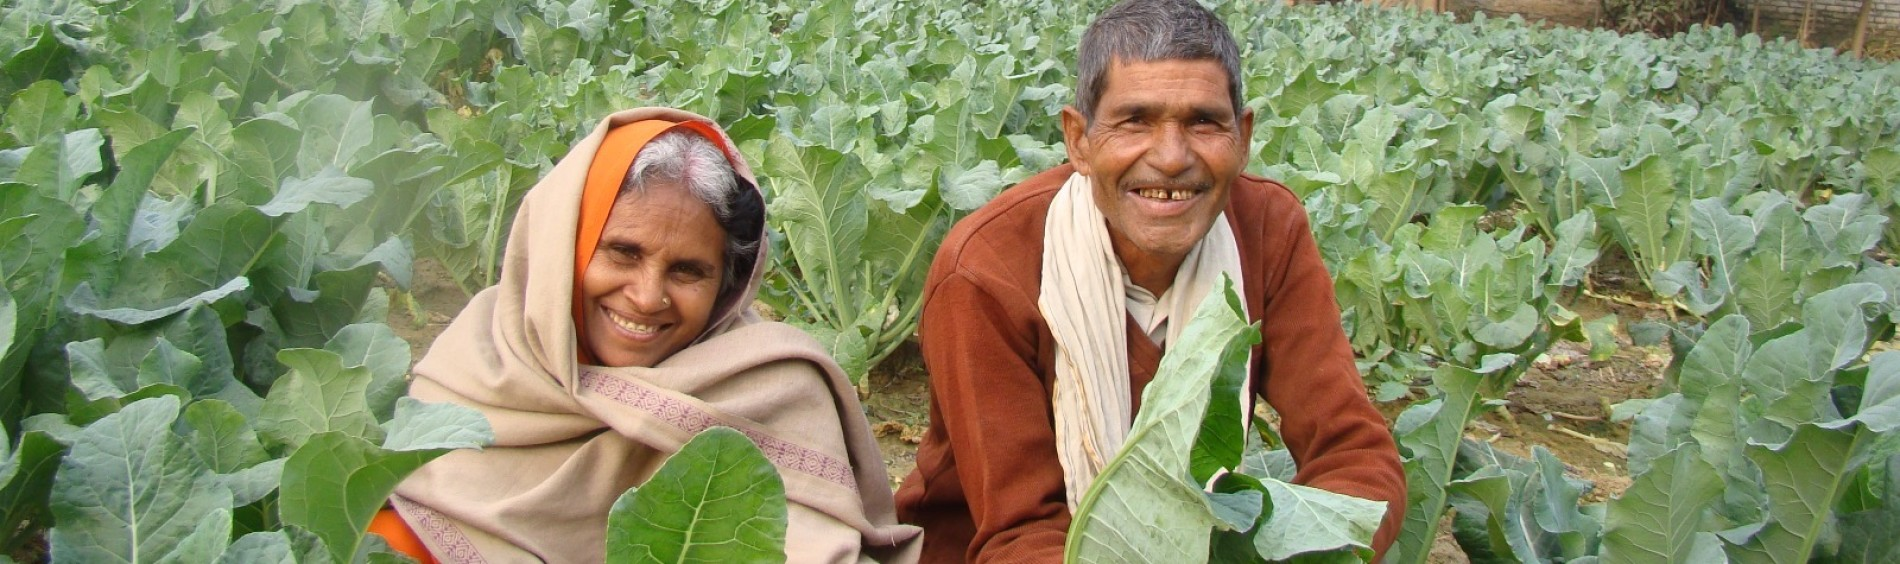 Two farmers are smiling in a field